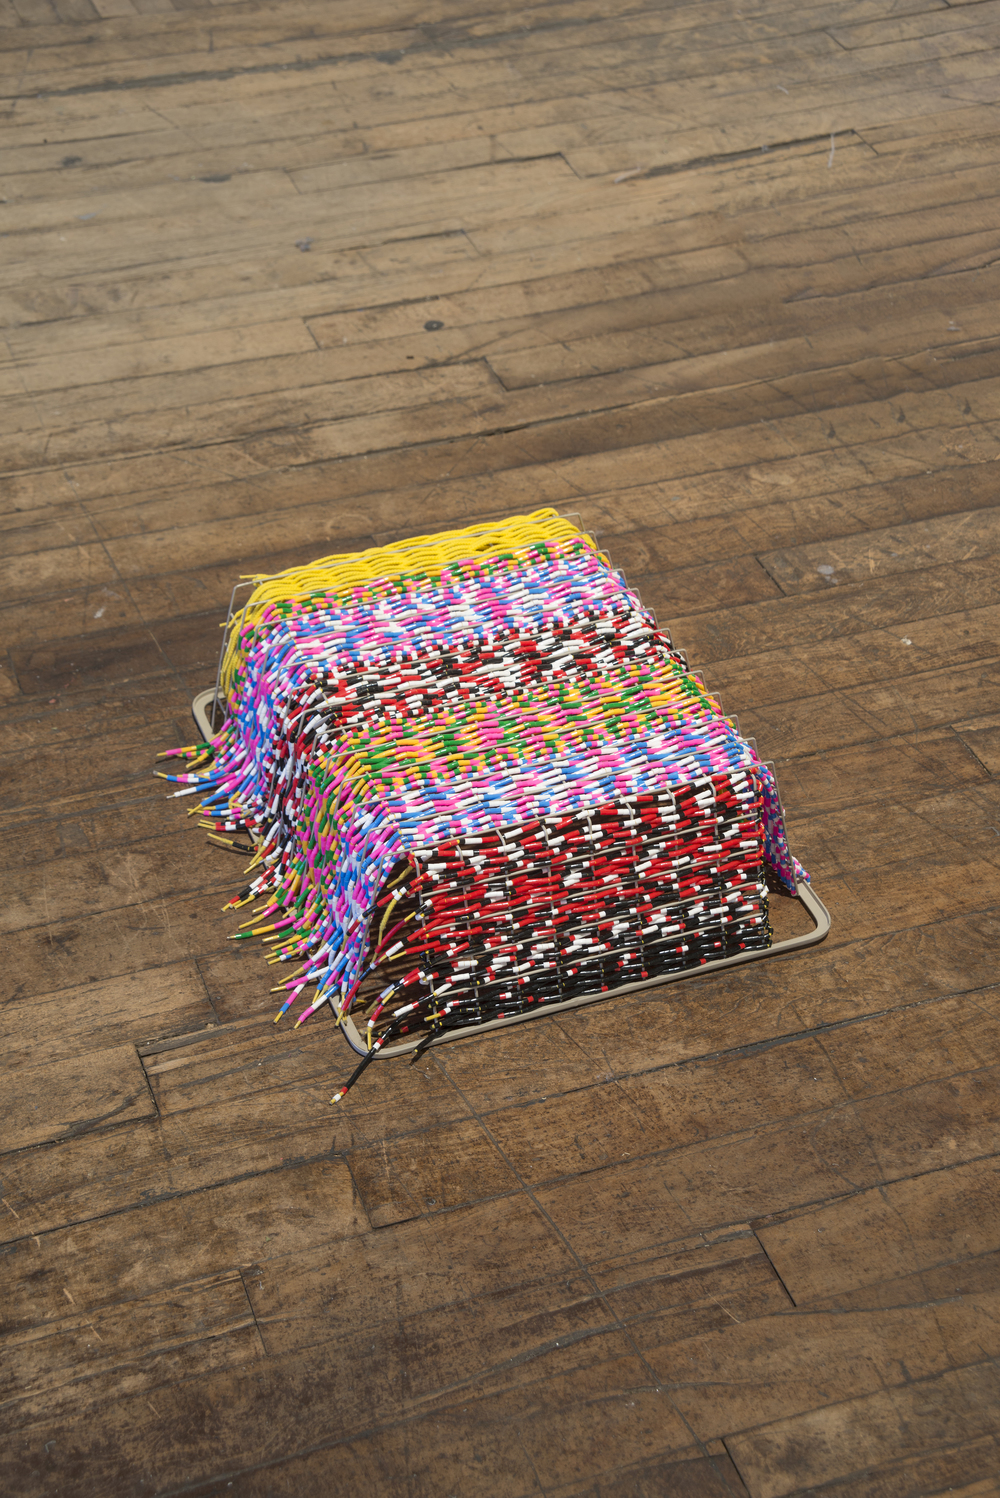 2016, Metal basket, shoelaces and plastic beads